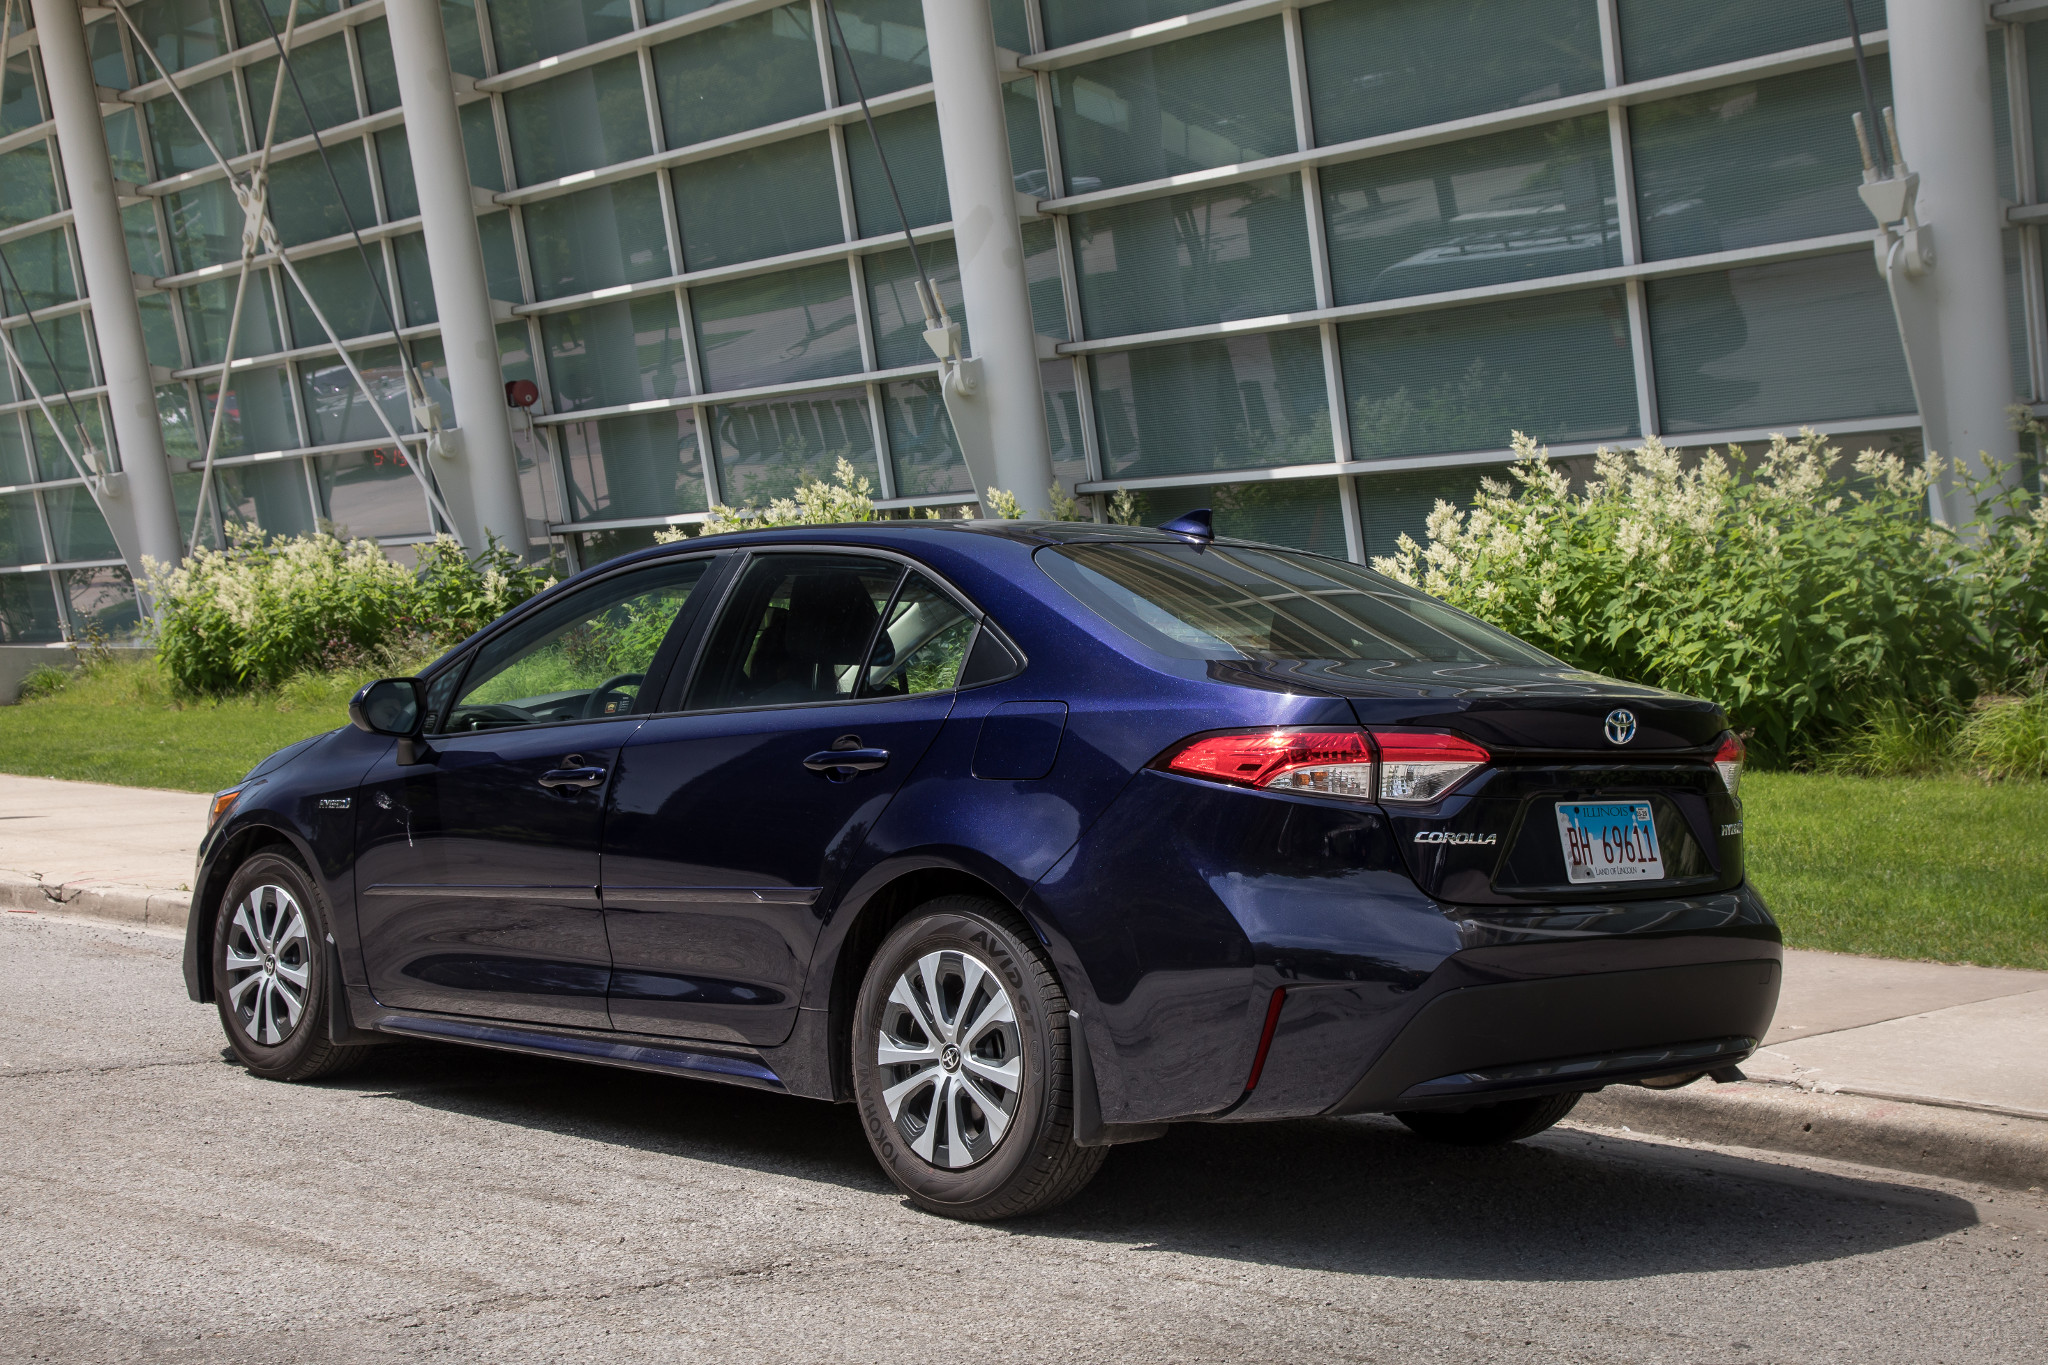 Top 5 Reviews and Videos of the Week: 2020 Toyota Corolla Hybrid Opposes Outback